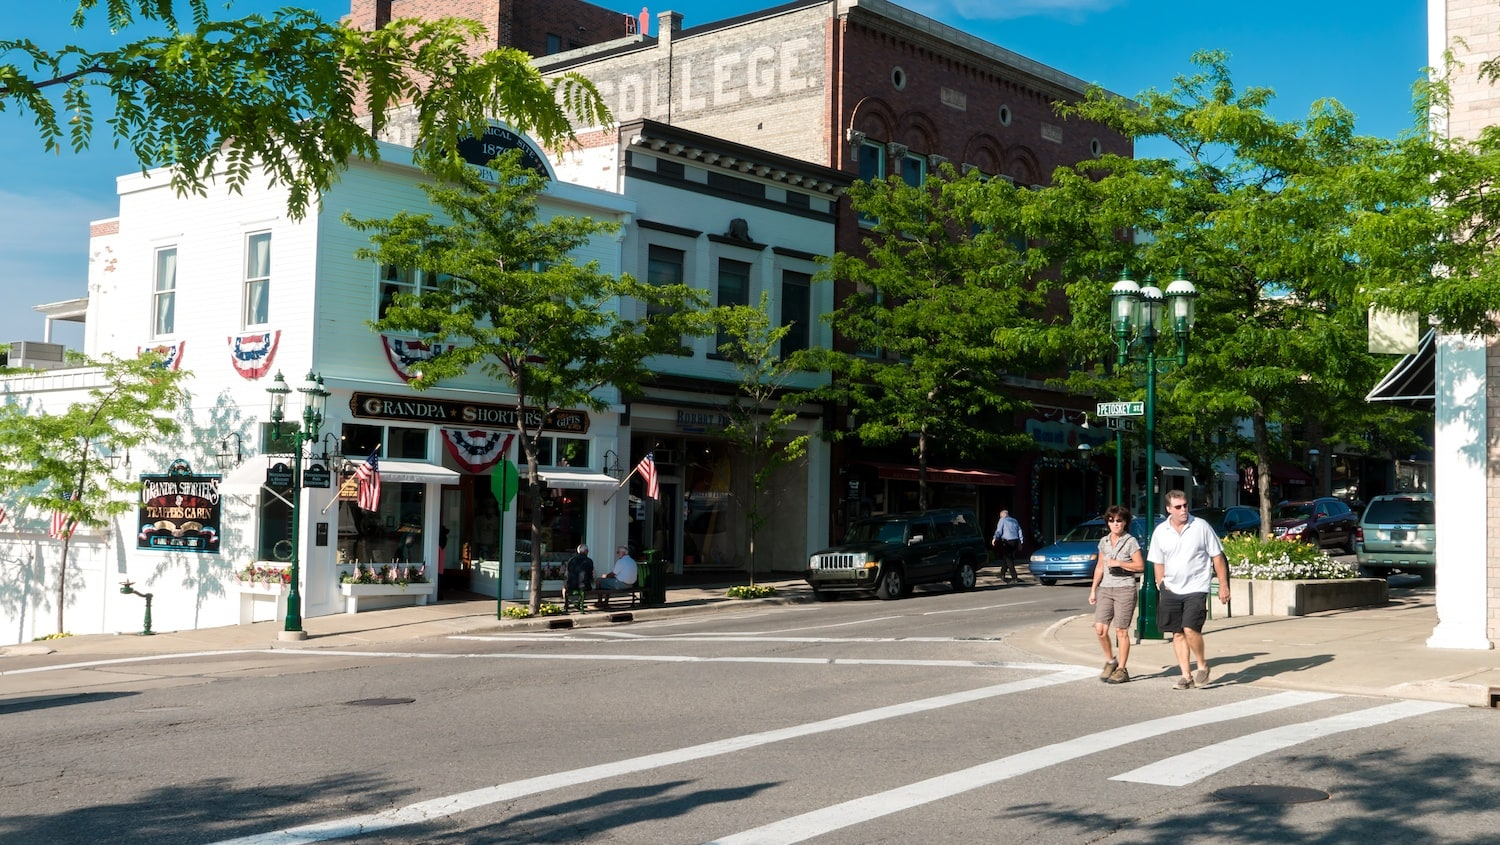 10 things to do near petoskey michigan for Craft shows in traverse city mi